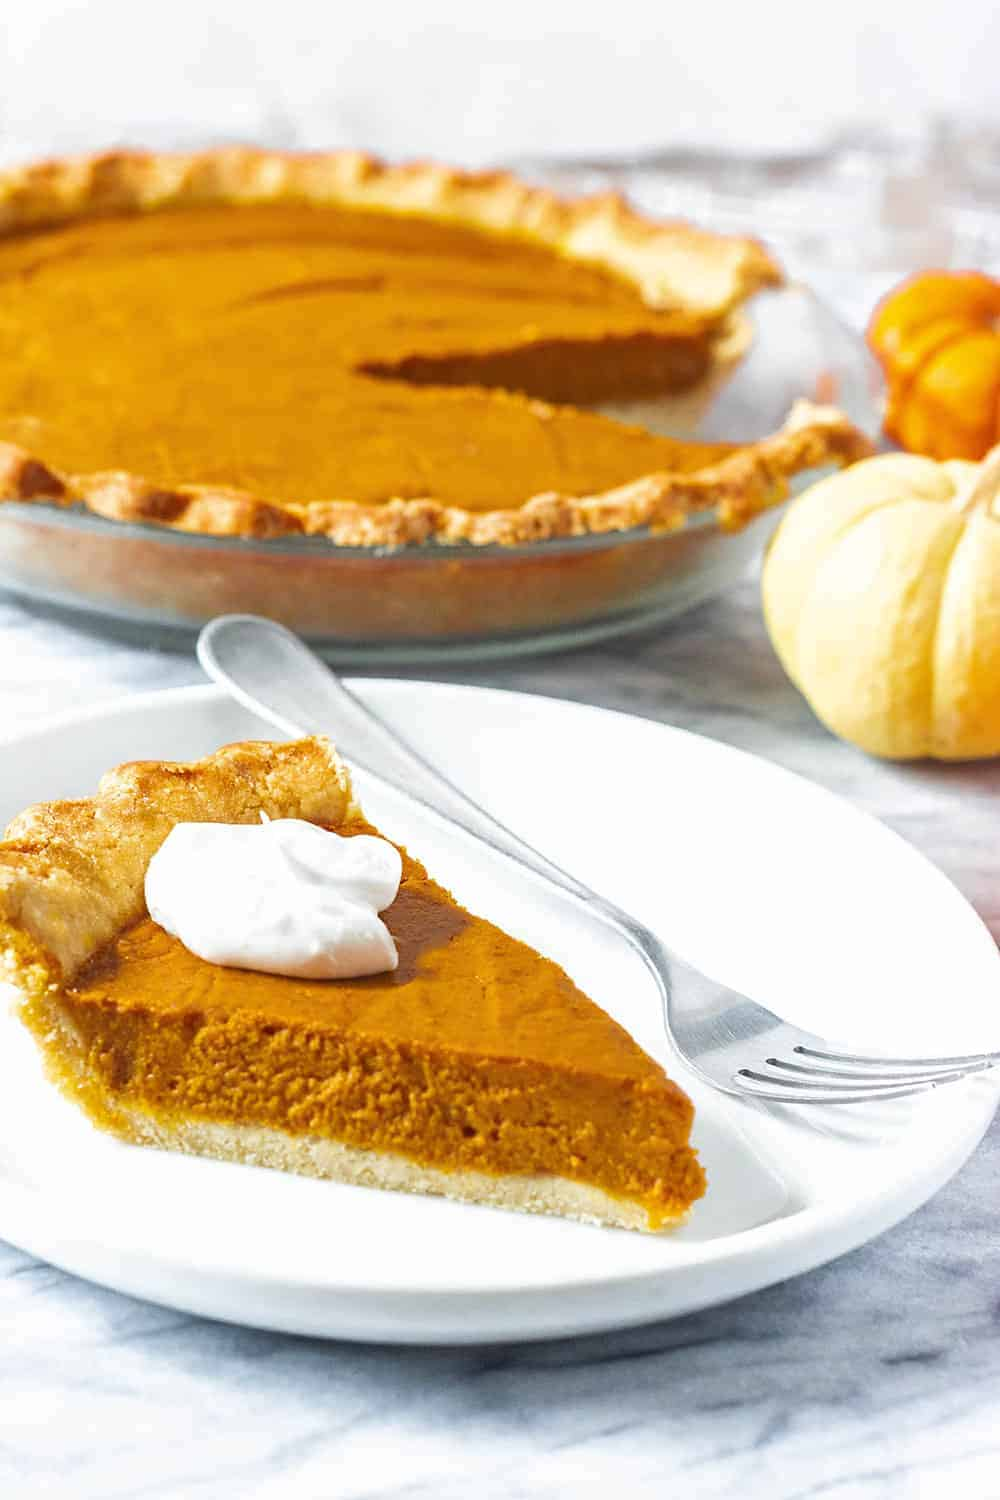 Pumpkin Pie Vegan Gluten-Free Pie Crust